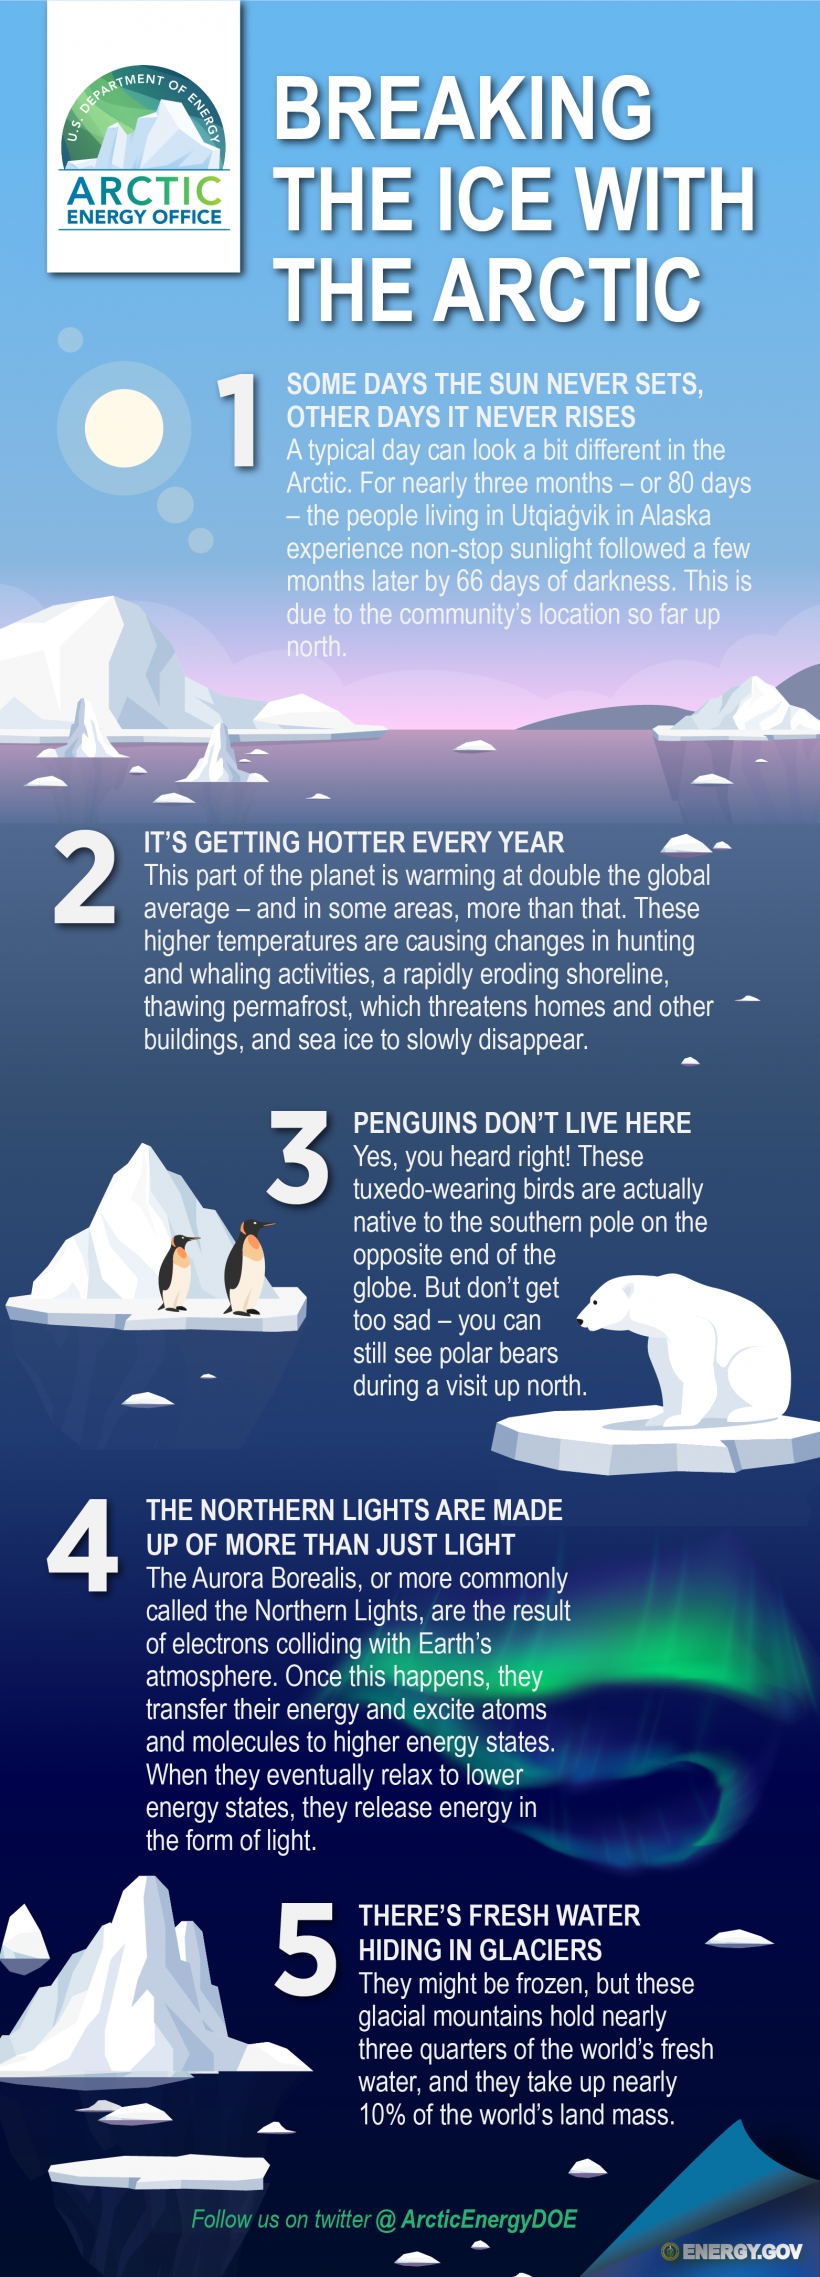 An infographic featuring penguins on an iceberg, a polar bear on a sheet of ice and an iceberg details five facts about the Arctic, including how some days the sun never sets and other days it never rises, how this region is warming at double the rate as the rest of the globe, penguins don't actually inhabit this area, the Northern Lights are made up of more than just light and there's fresh water hiding in glaciers.